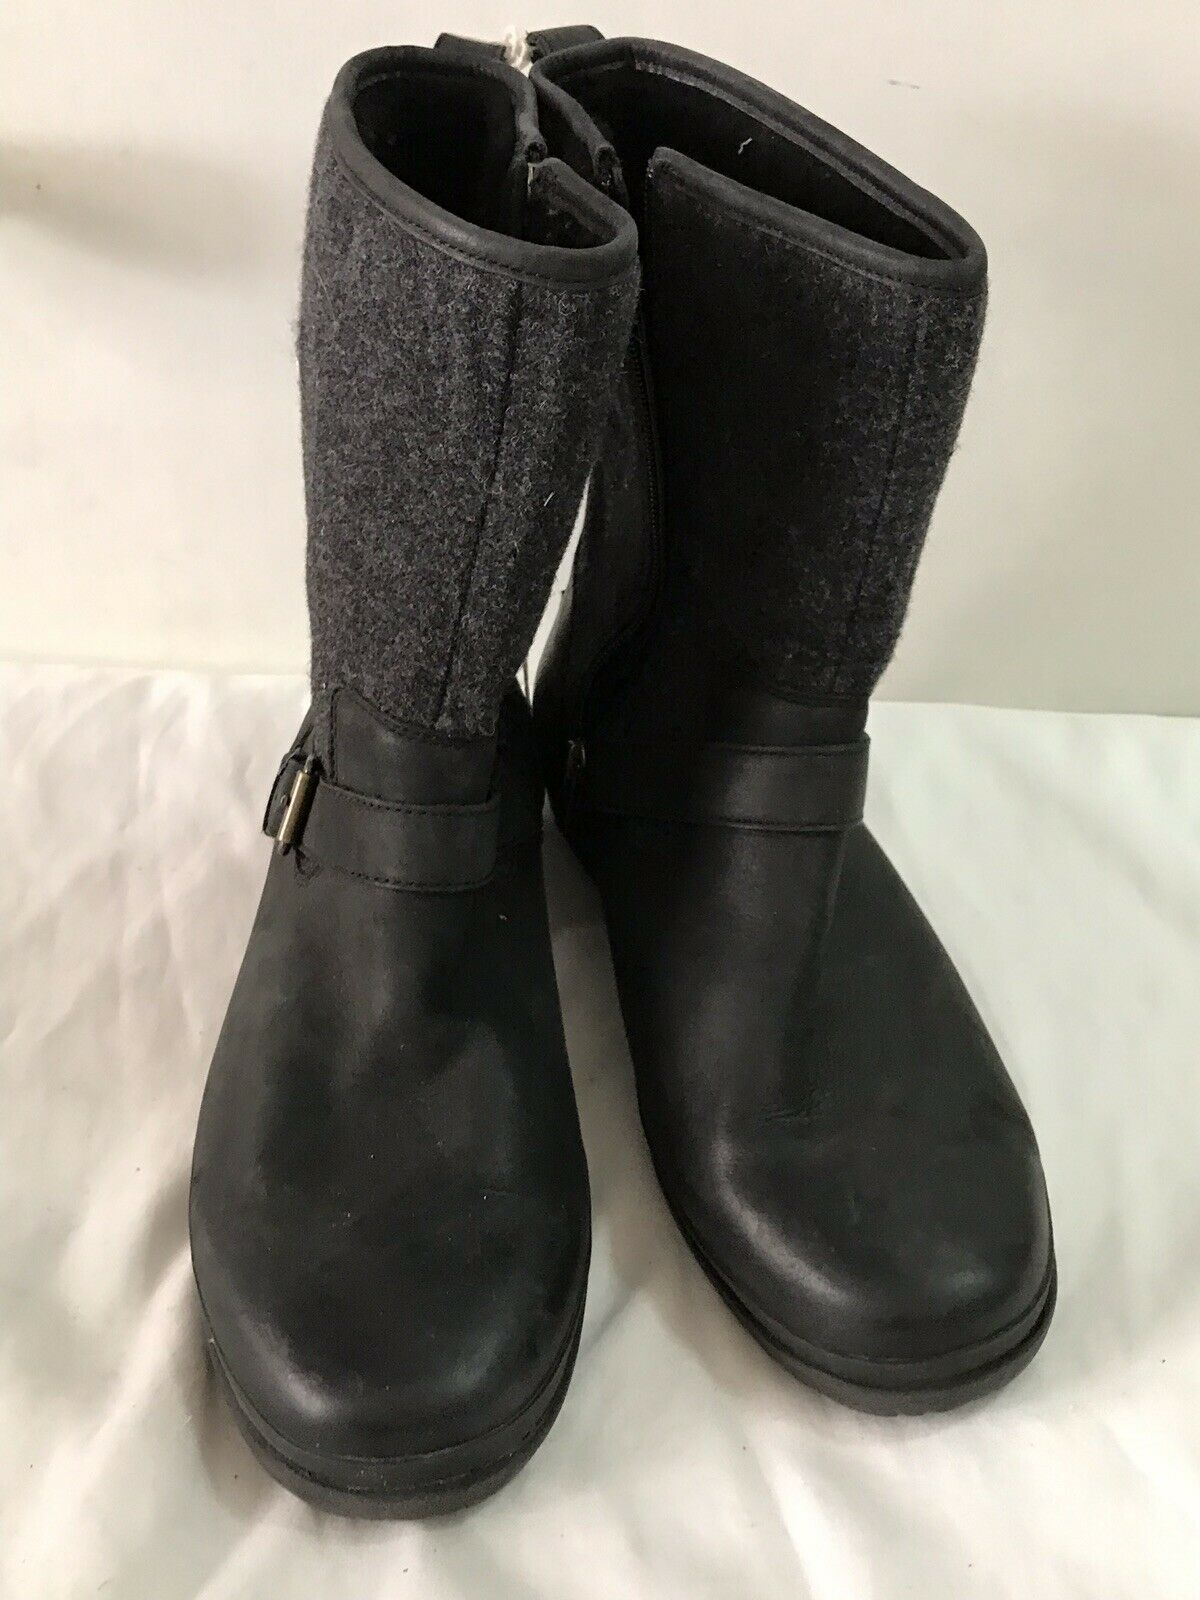 UGG Australia Boots Womens Size 10 Runs Small